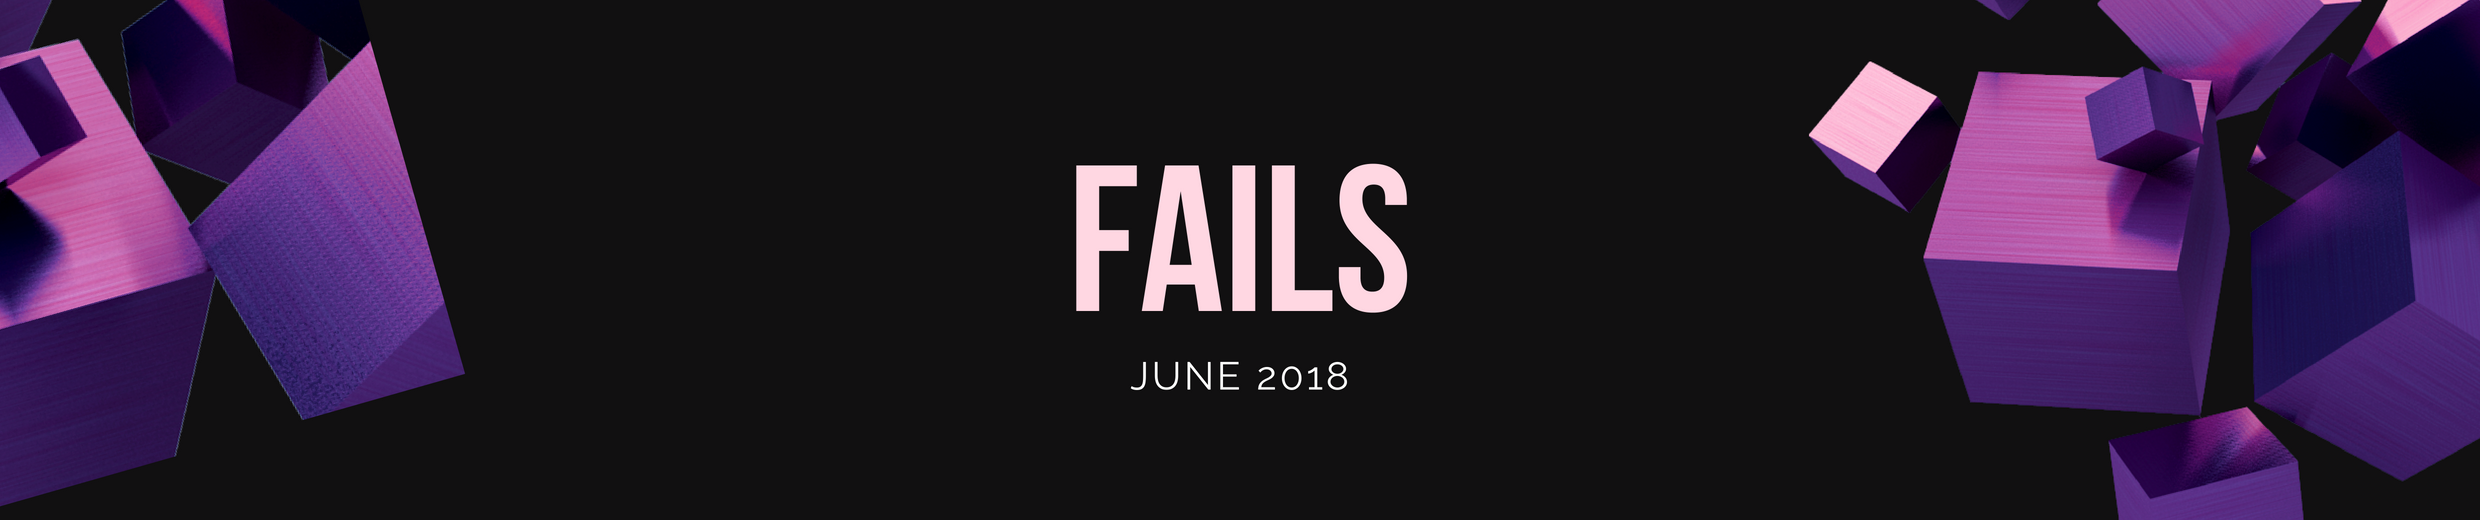 Fabs and Fails - June 2018